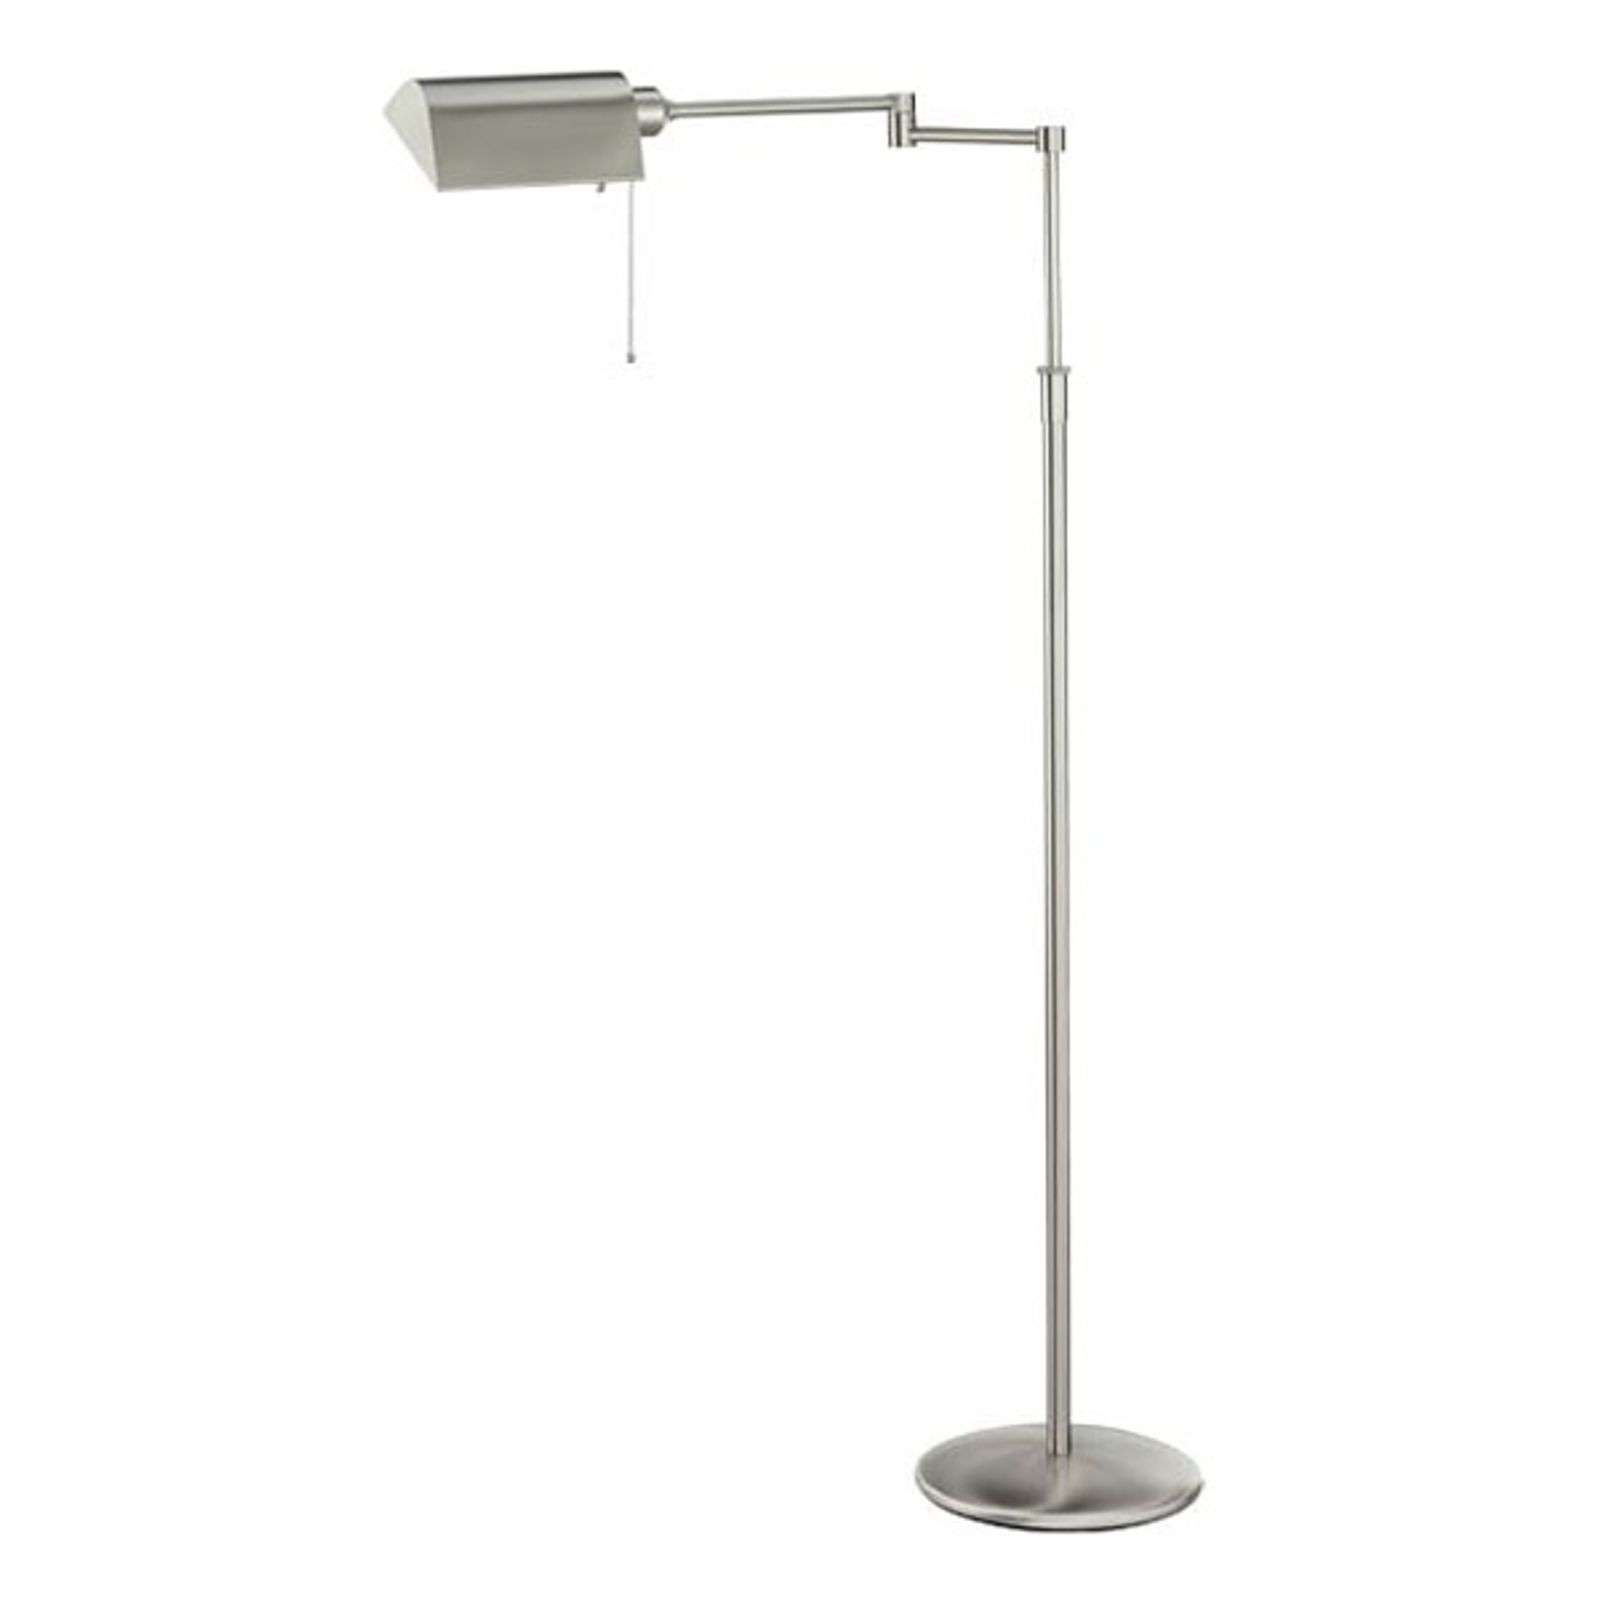 Lampadaire basse consommation DUNIA nickel